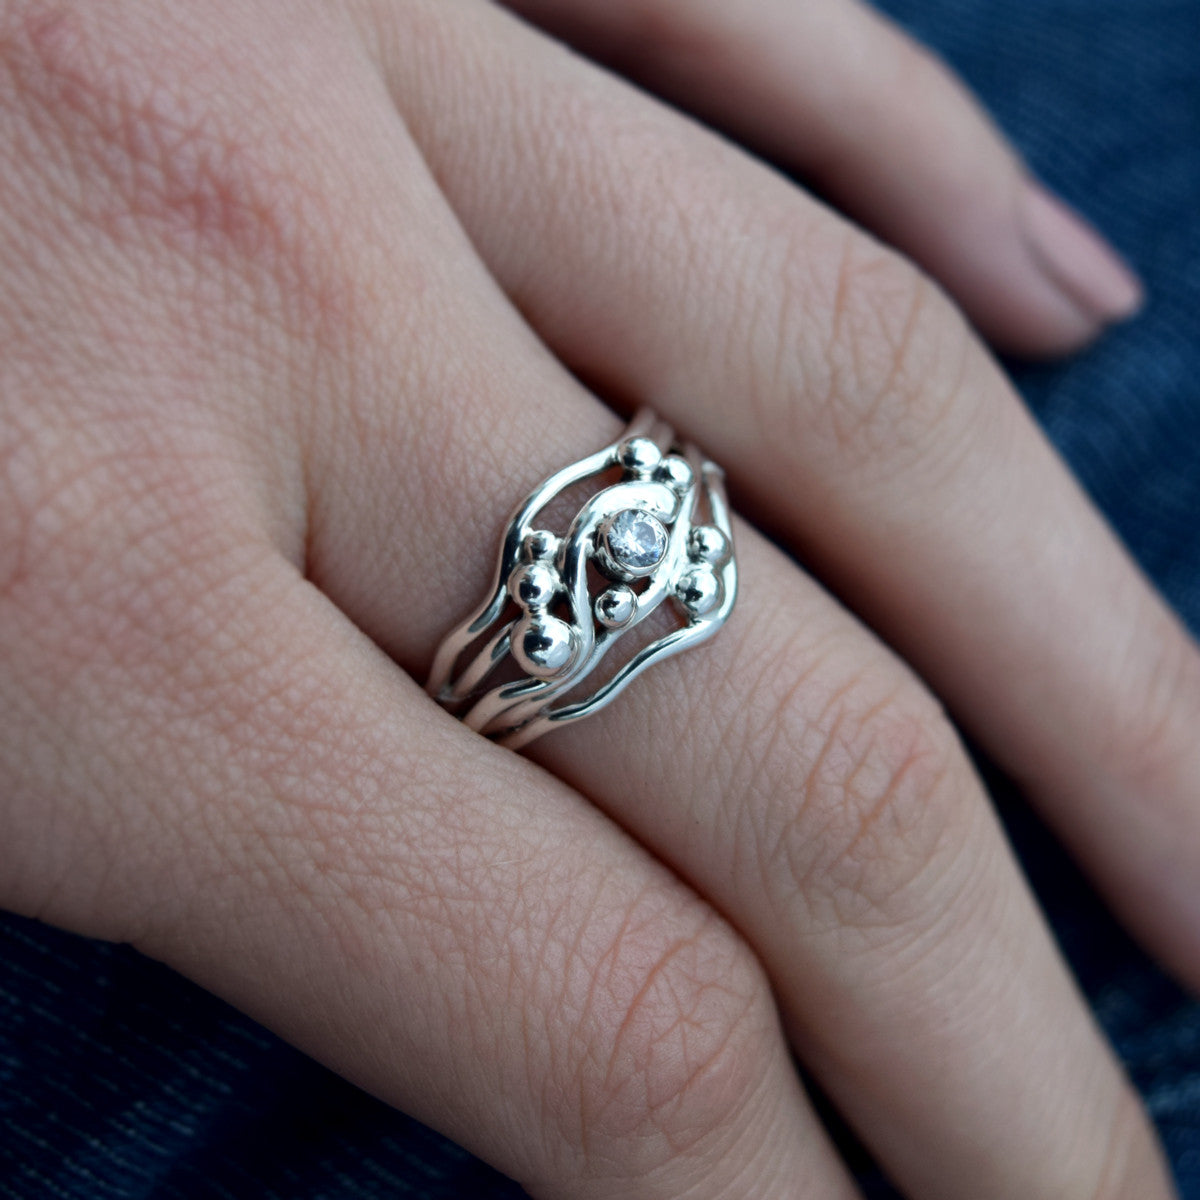 Brutalist White CZ Ring : Size 7.5